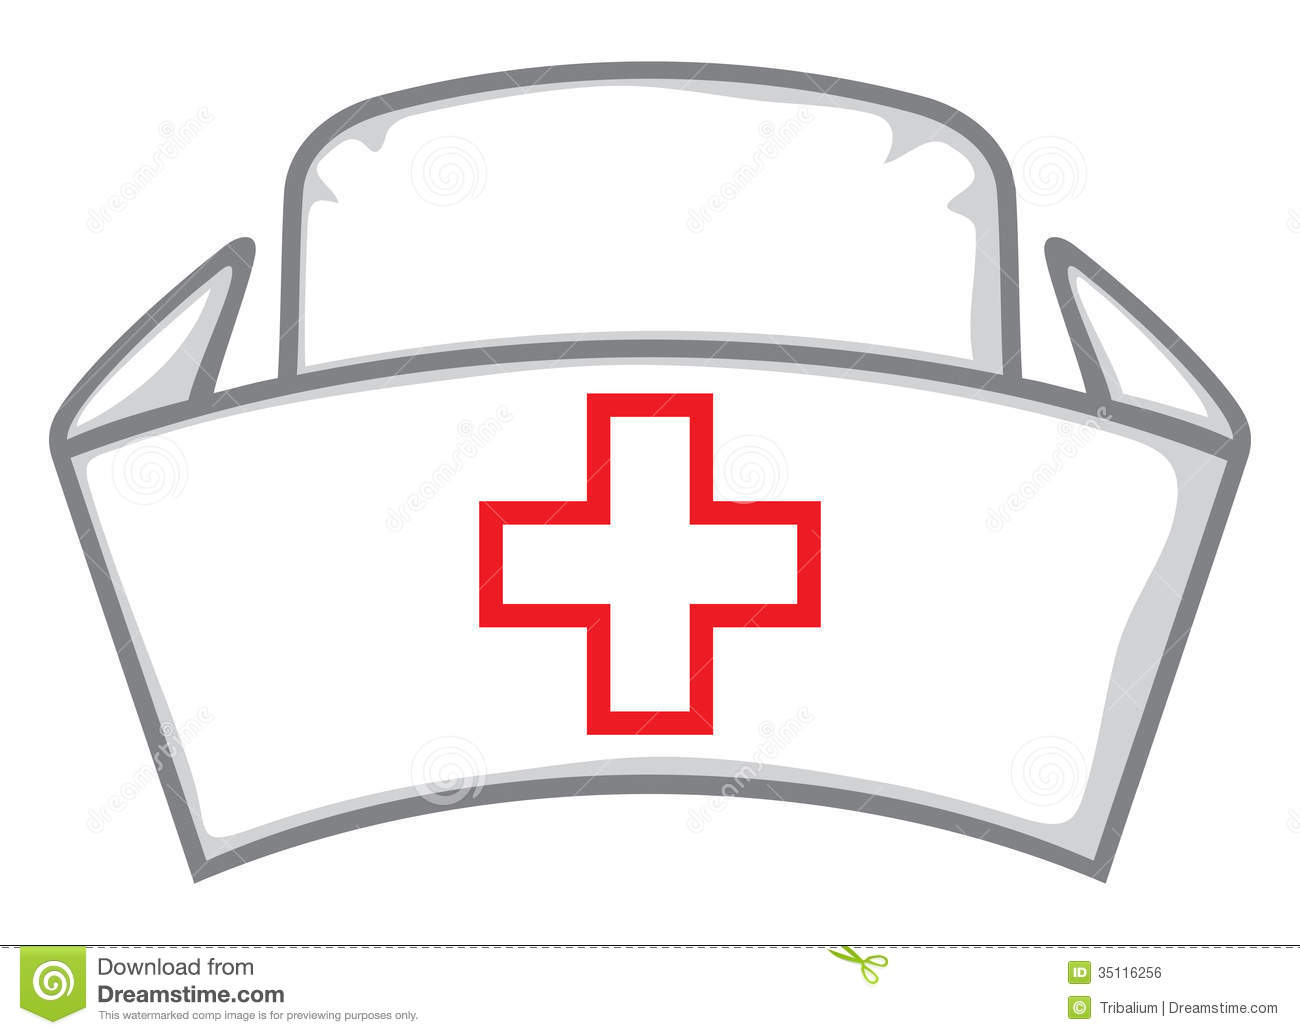 nurse-cap-medical-white-hat-nurses-hat-35116256.jpg